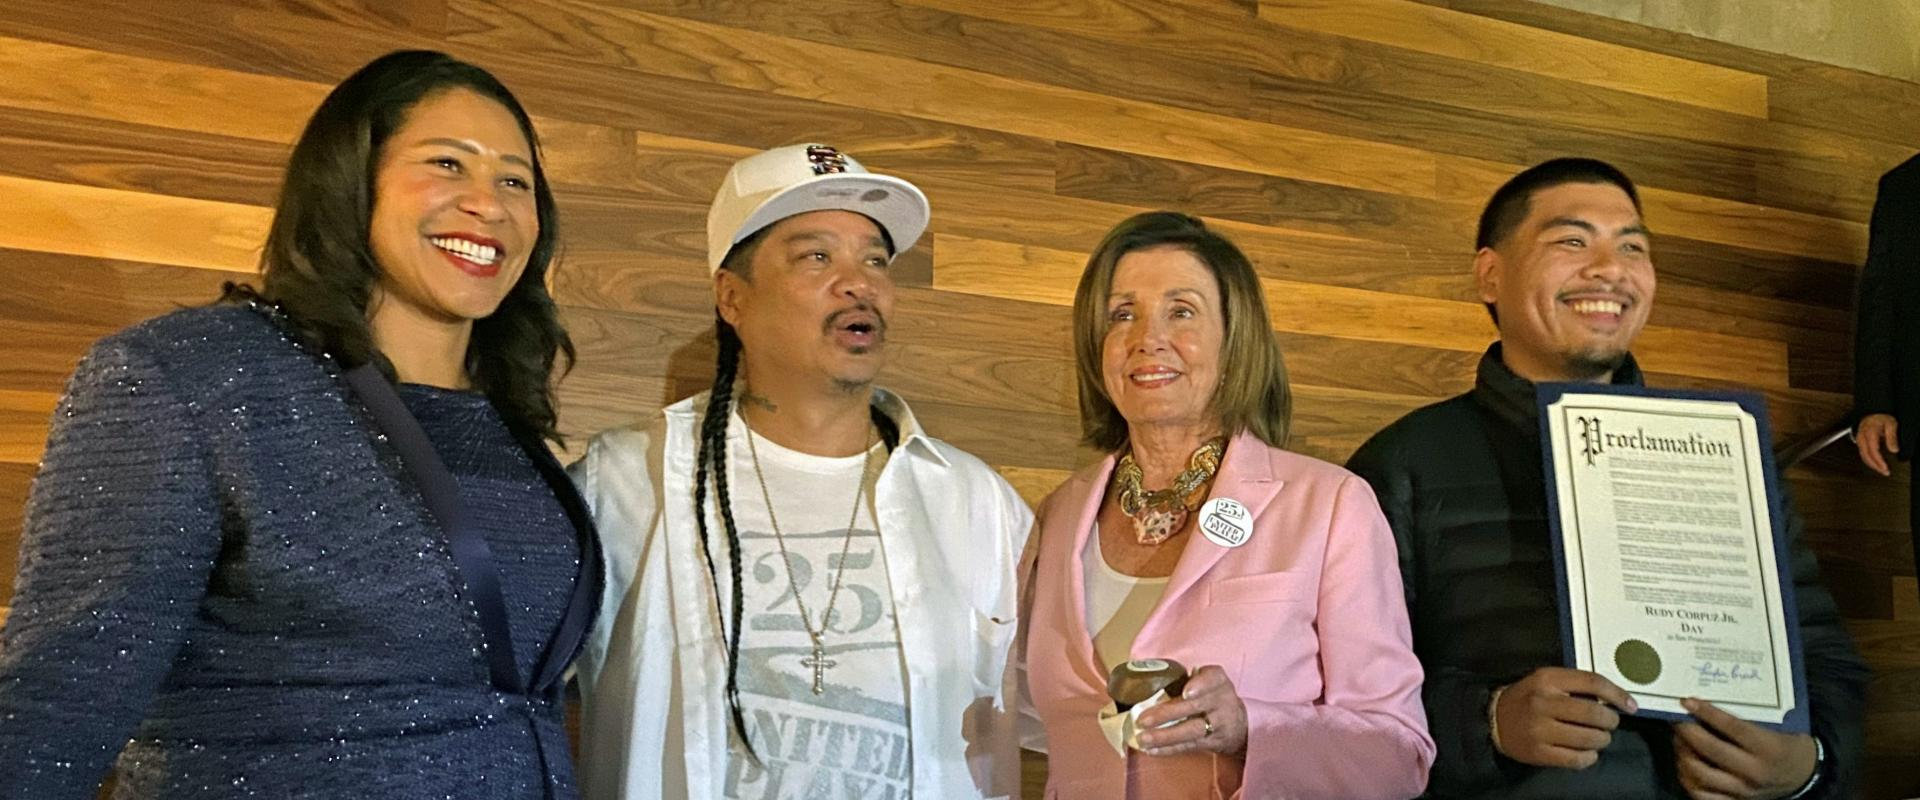 Congresswoman Nancy Pelosi joined Mayor London Breed and Rudy Corpuz, Jr., founder of United Playaz, to celebrate 25 years of gun violence prevention advocacy, and providing a safe-haven of services and resources to the community.